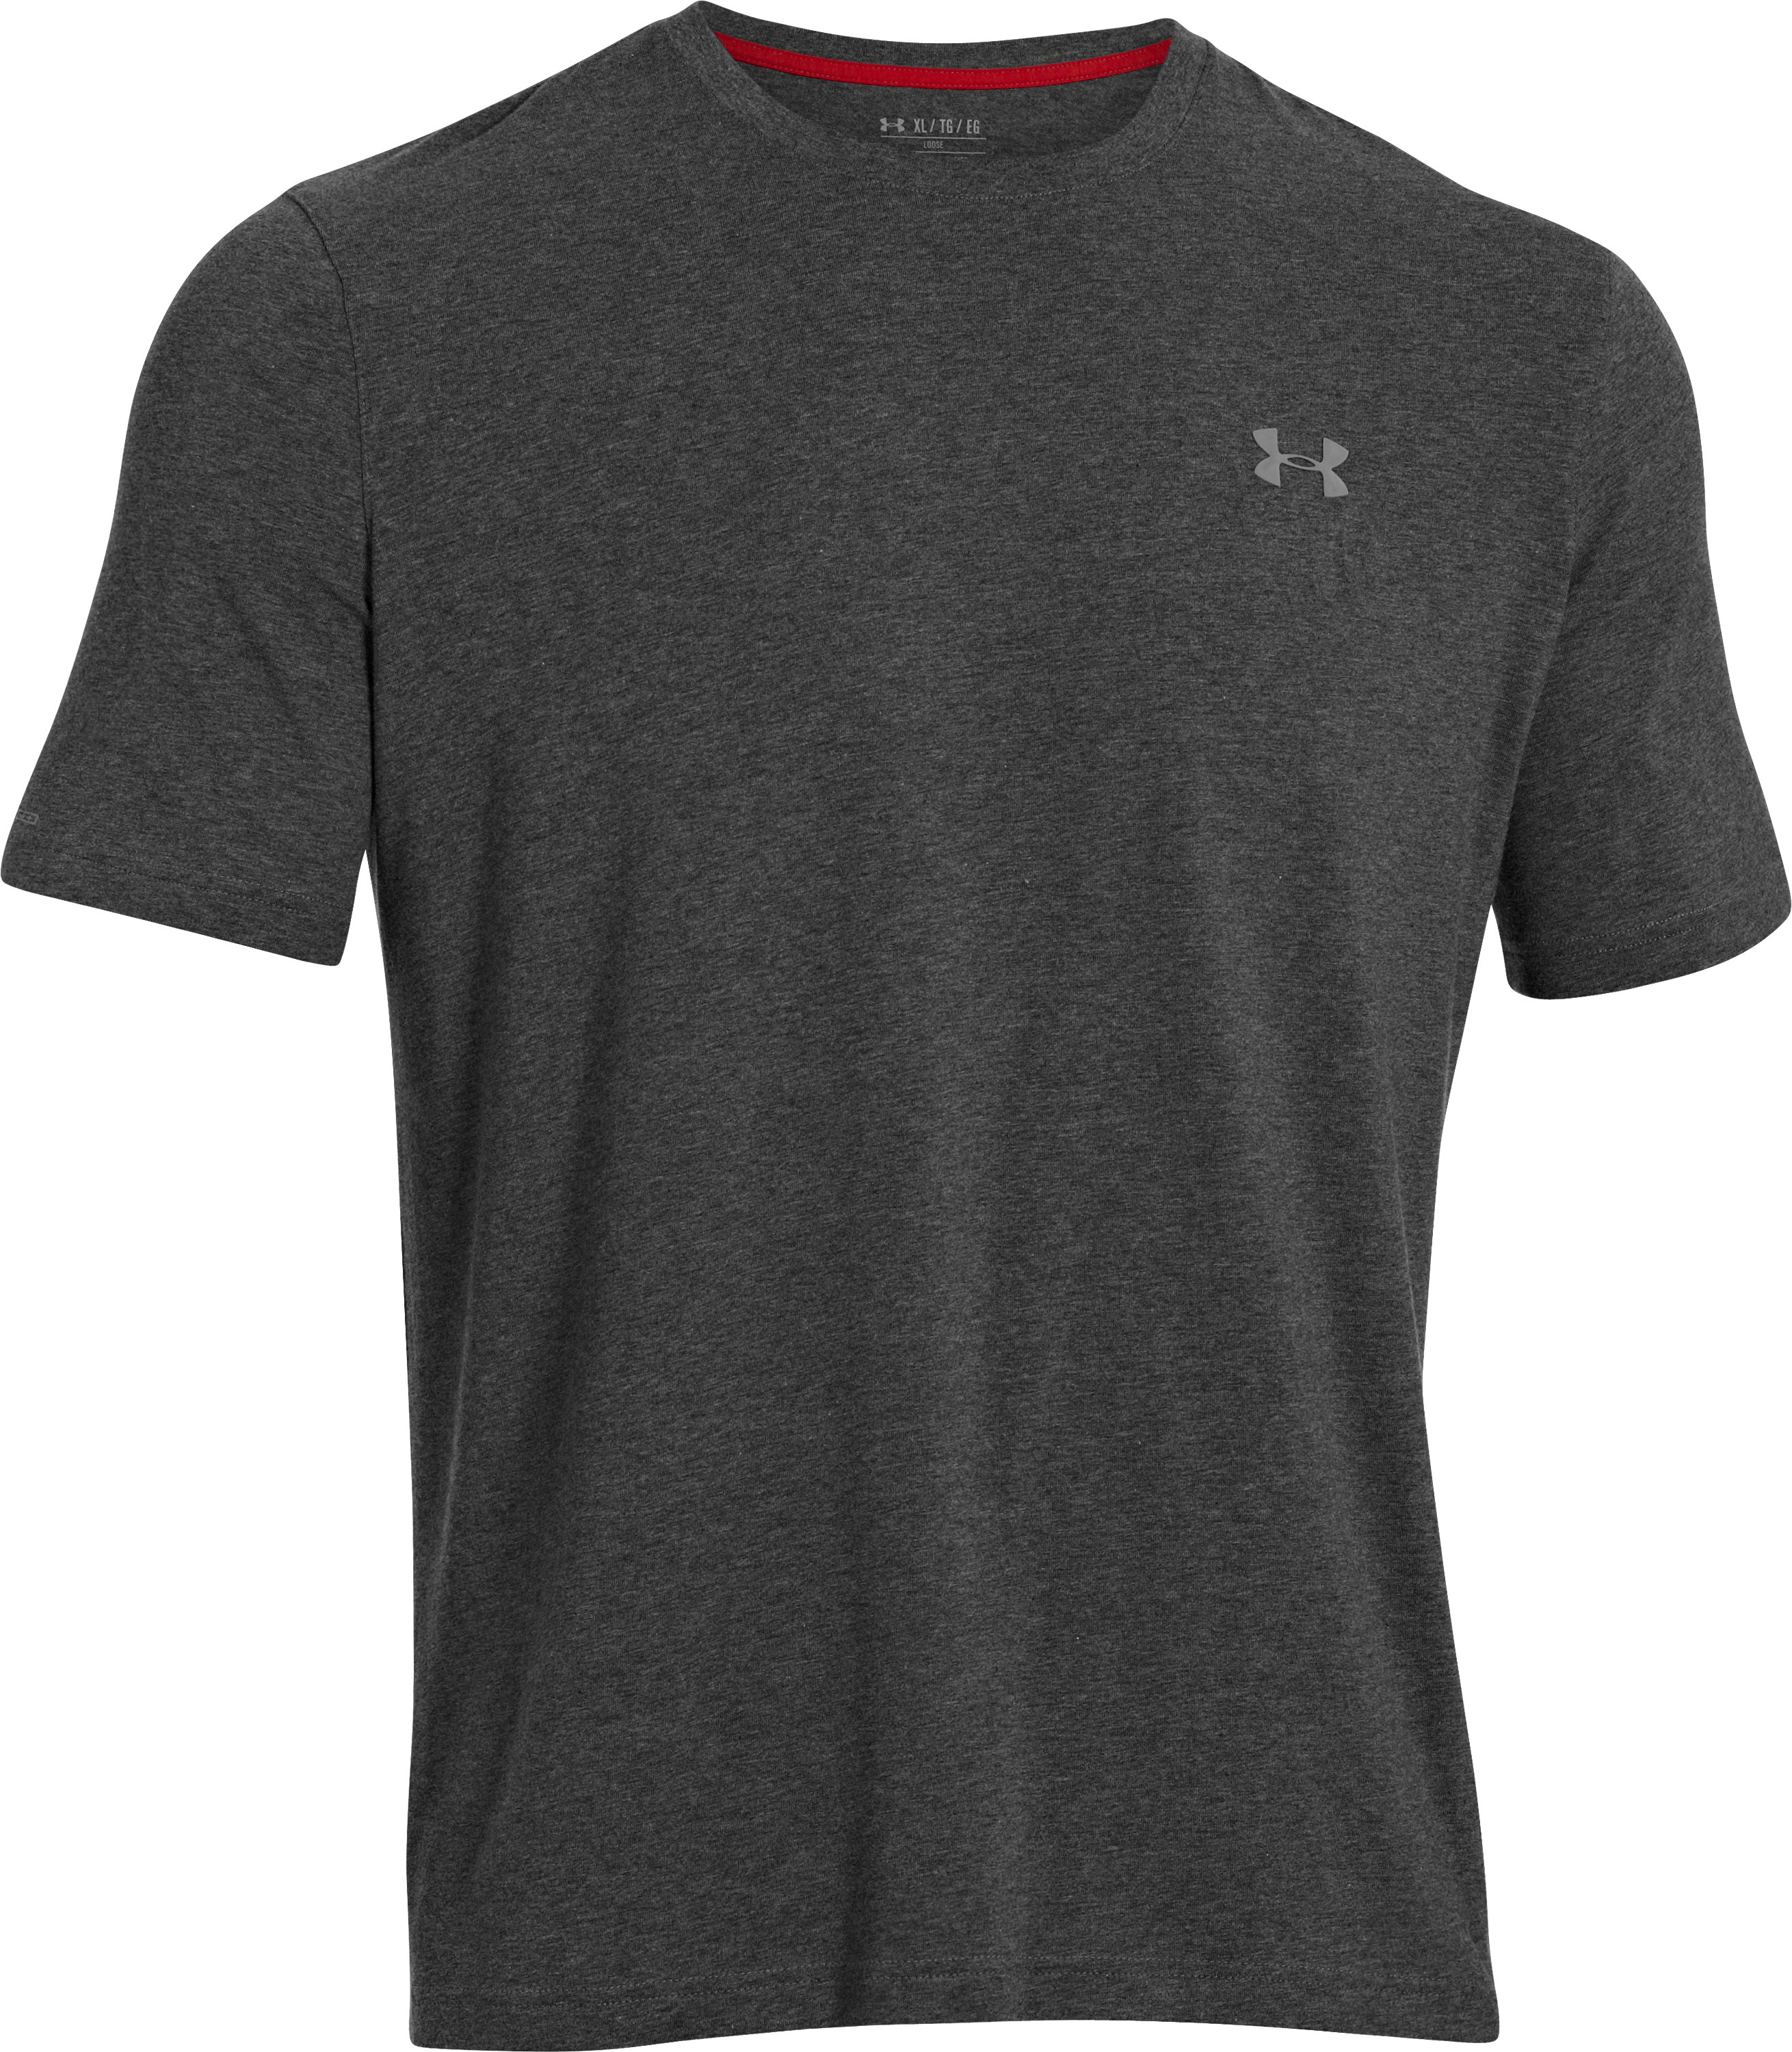 Men's Charged Cotton® T-Shirt, Carbon Heather, undefined